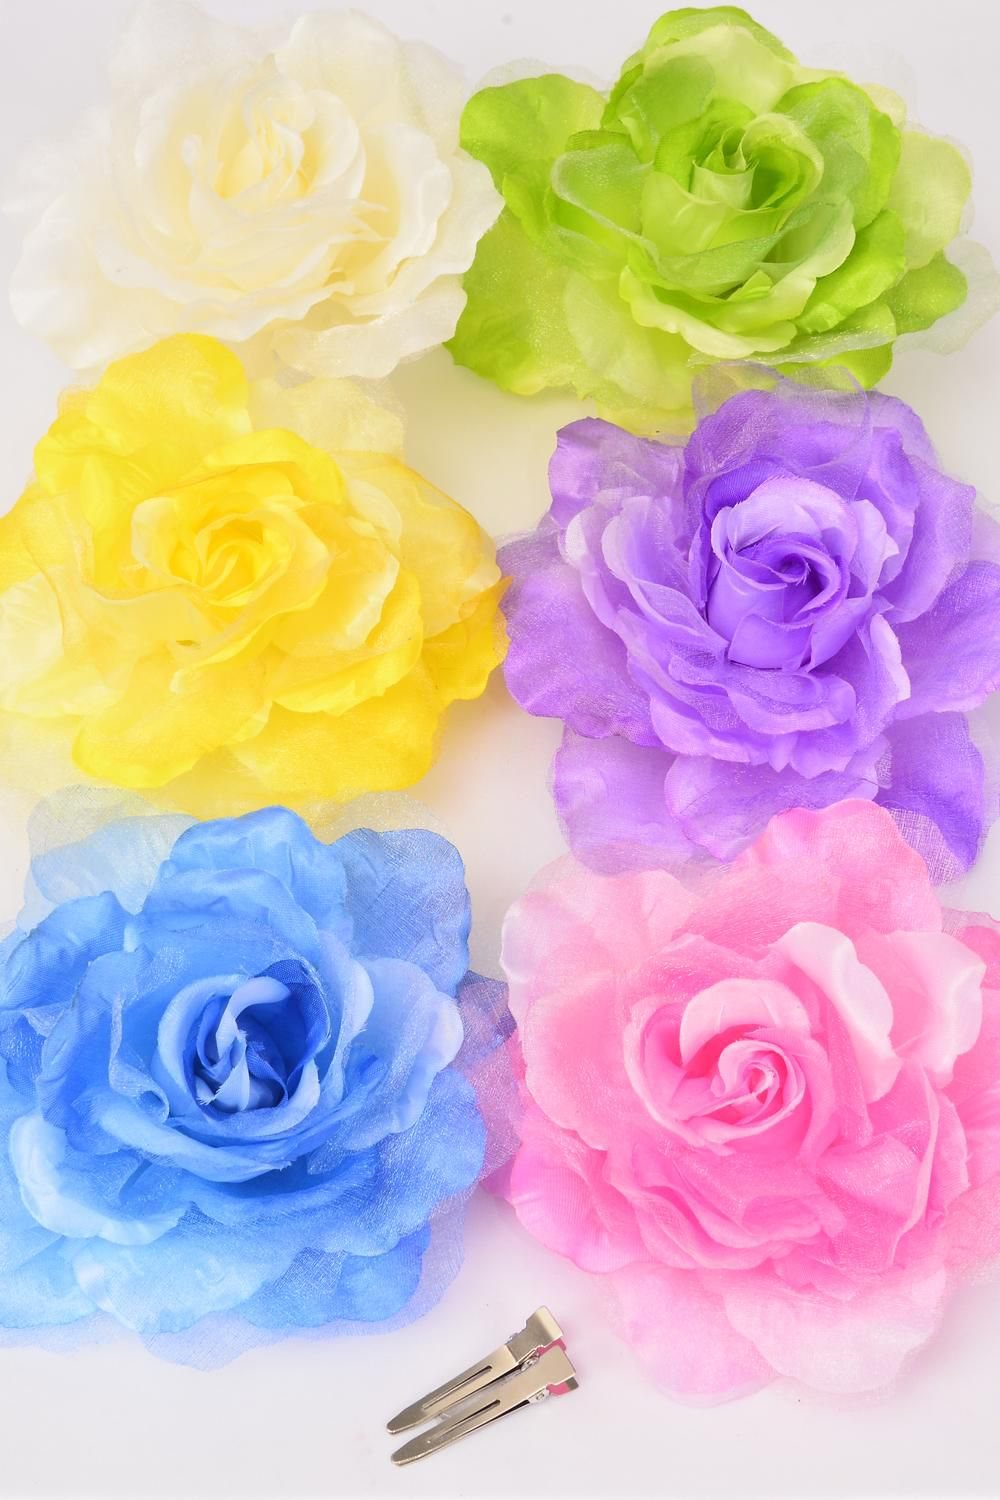 "Silk Flower Jumbo Pastel Tea Rose & Chiffon Mix Alligator Clip/DZ **Pastel** Size-6"" Wide,Alligator Clip & Brooch,2 of each Color Asst,Display Card & UPC Code,W Clear Box -"